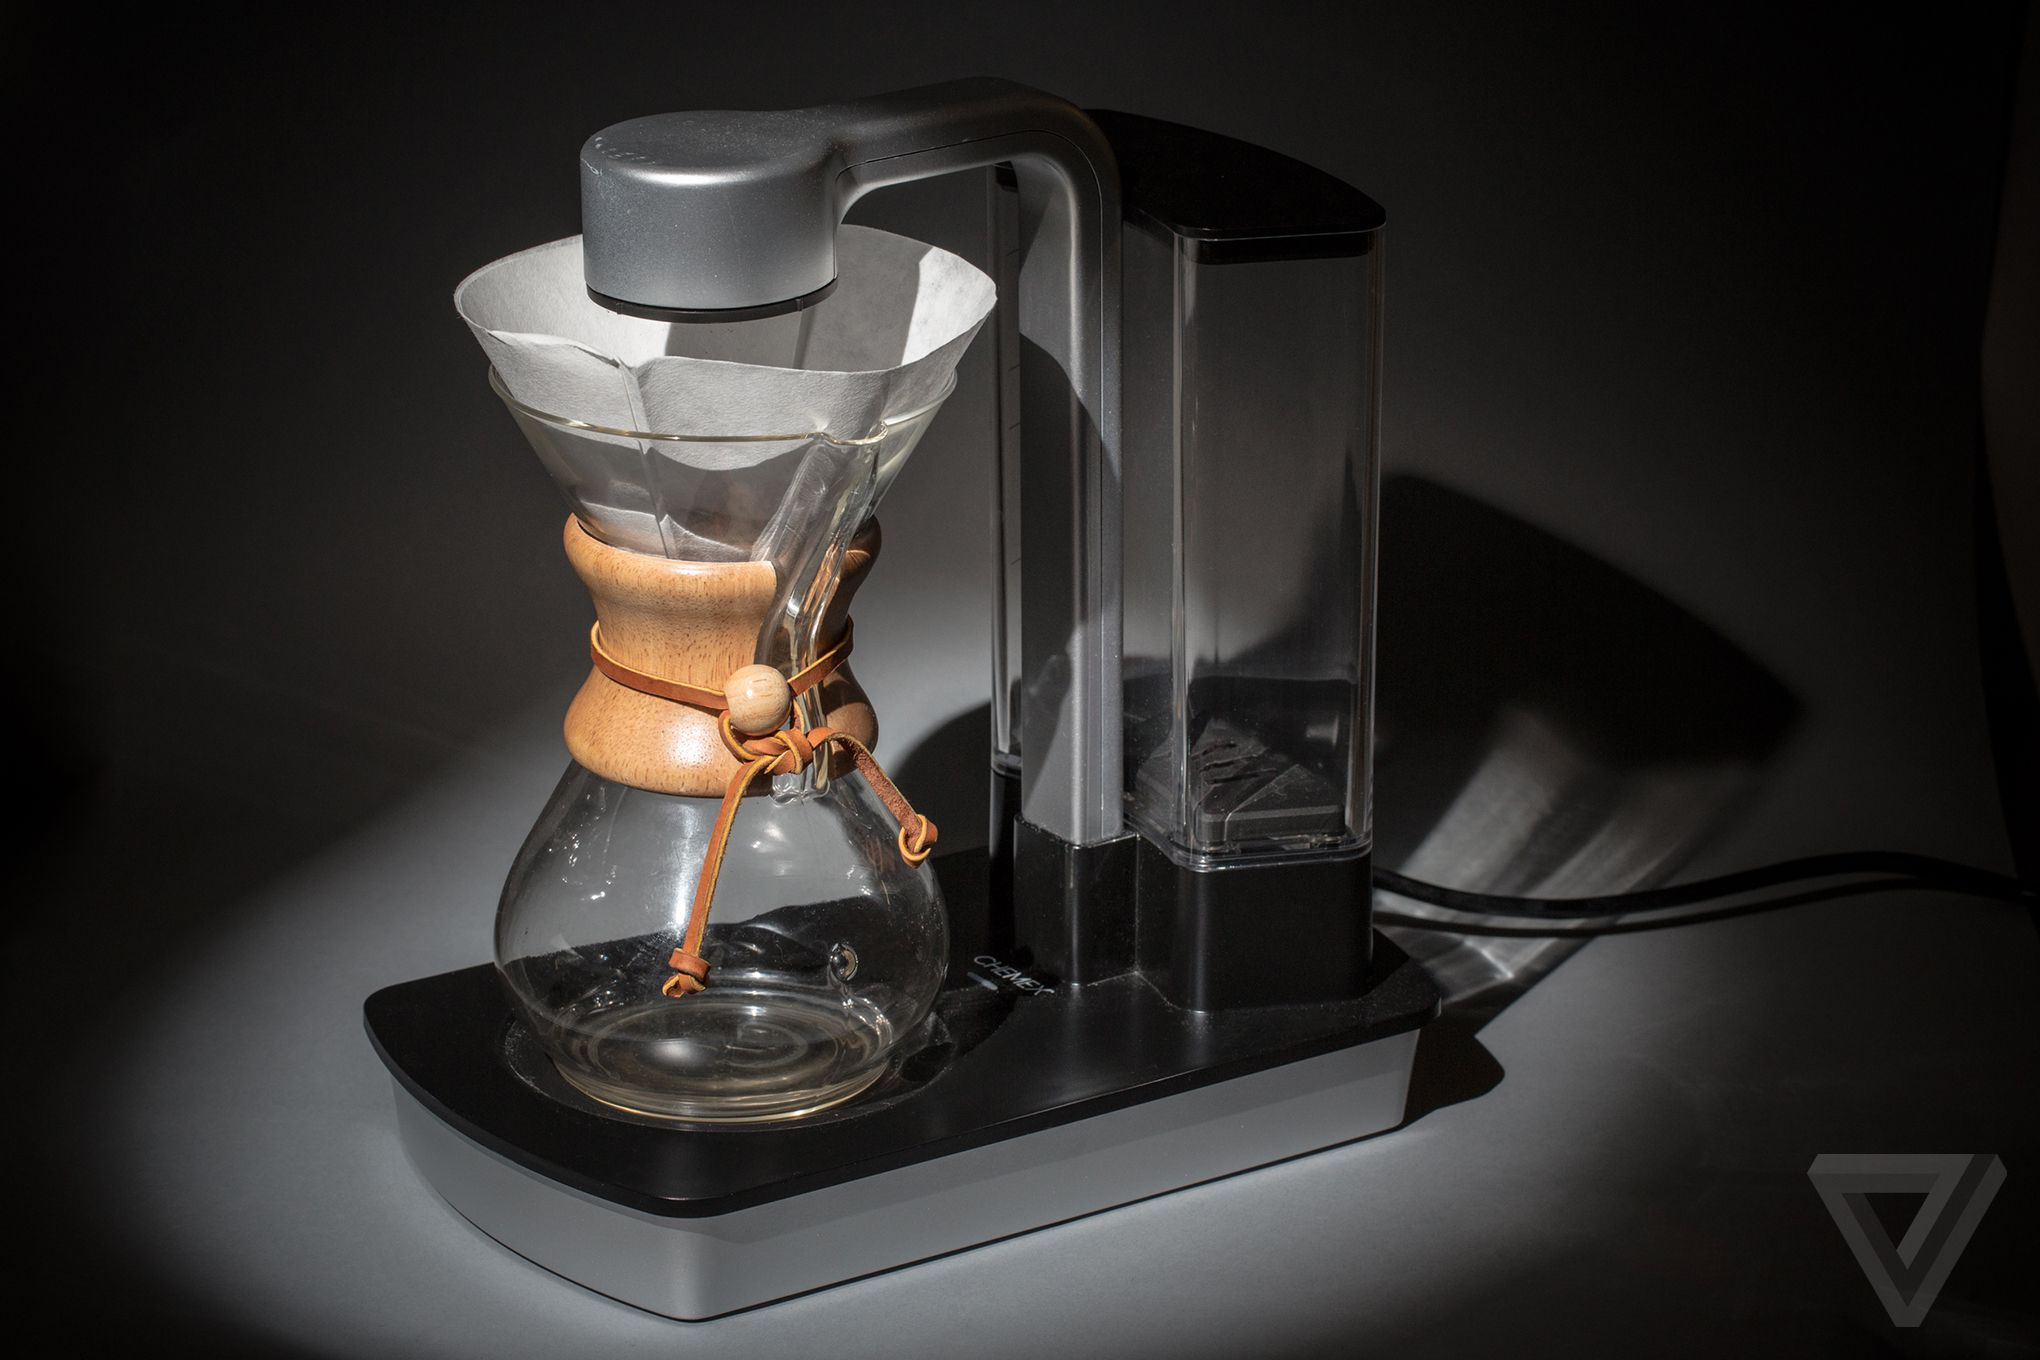 Best Coffee Maker in terms of taste? cheapness? and durability?